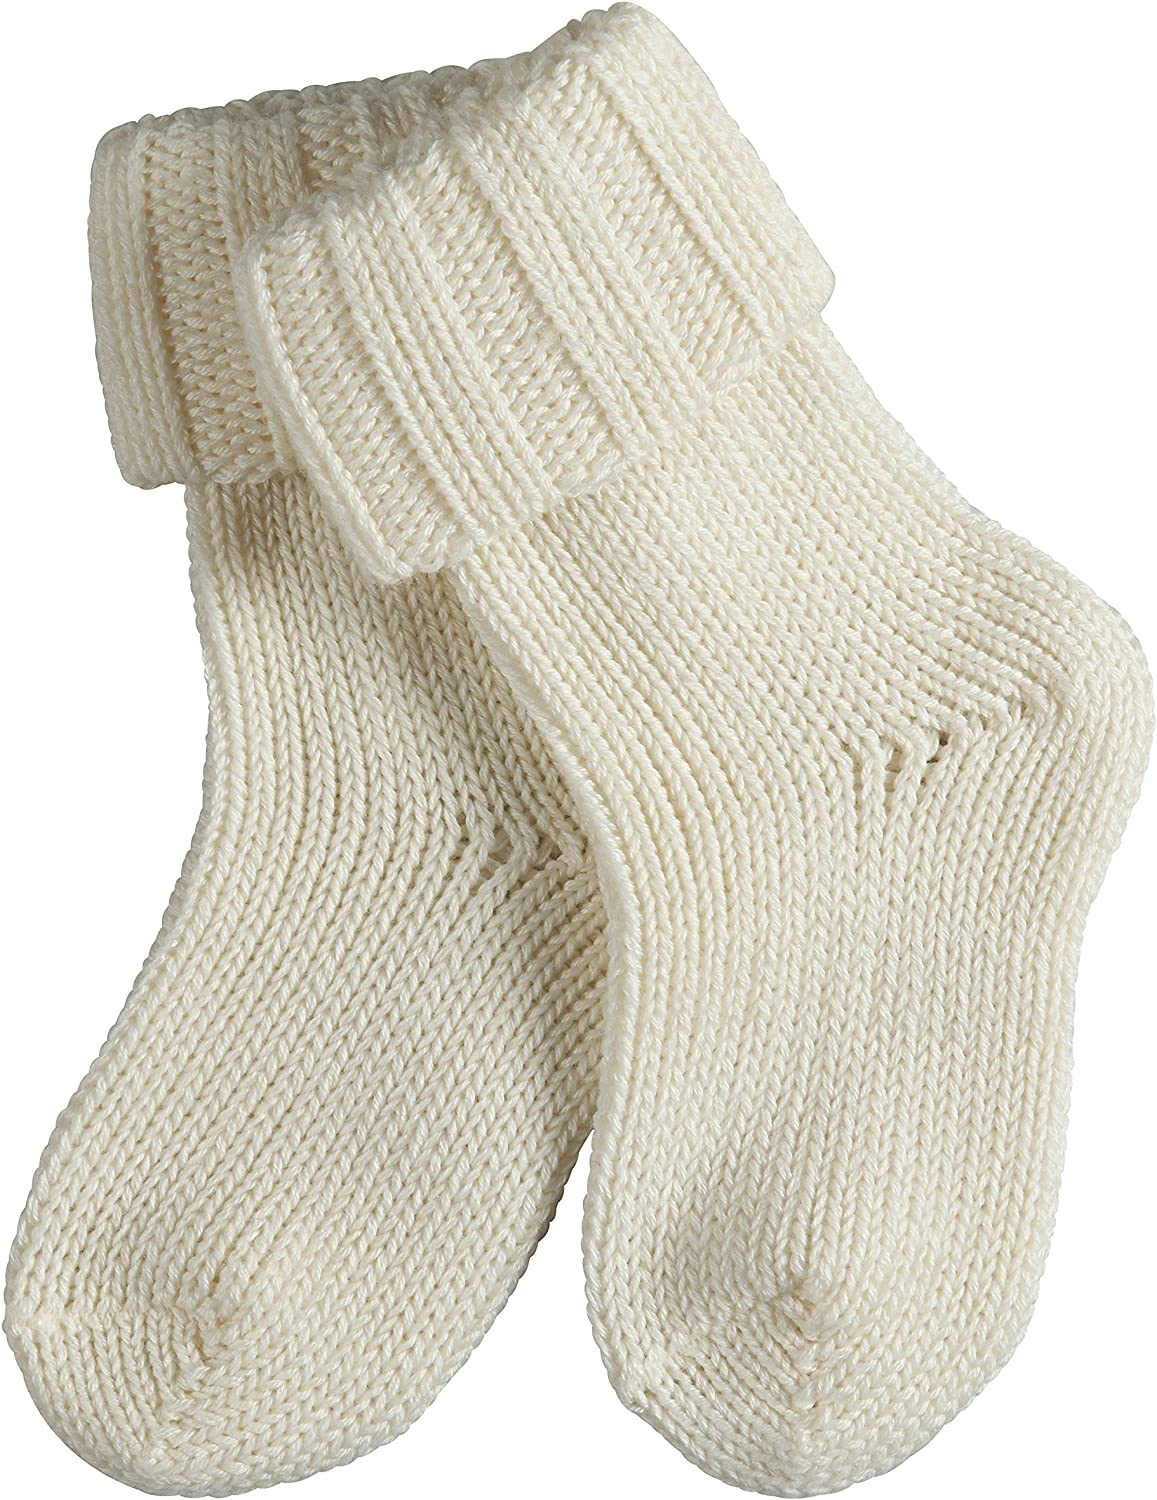 Thick ankle socks for baby boys and girls Cotton//Merino Wool Blend Sizes 1-18 months 1 Pair FALKE Unisex Baby Flausch Socks Multiple Colours